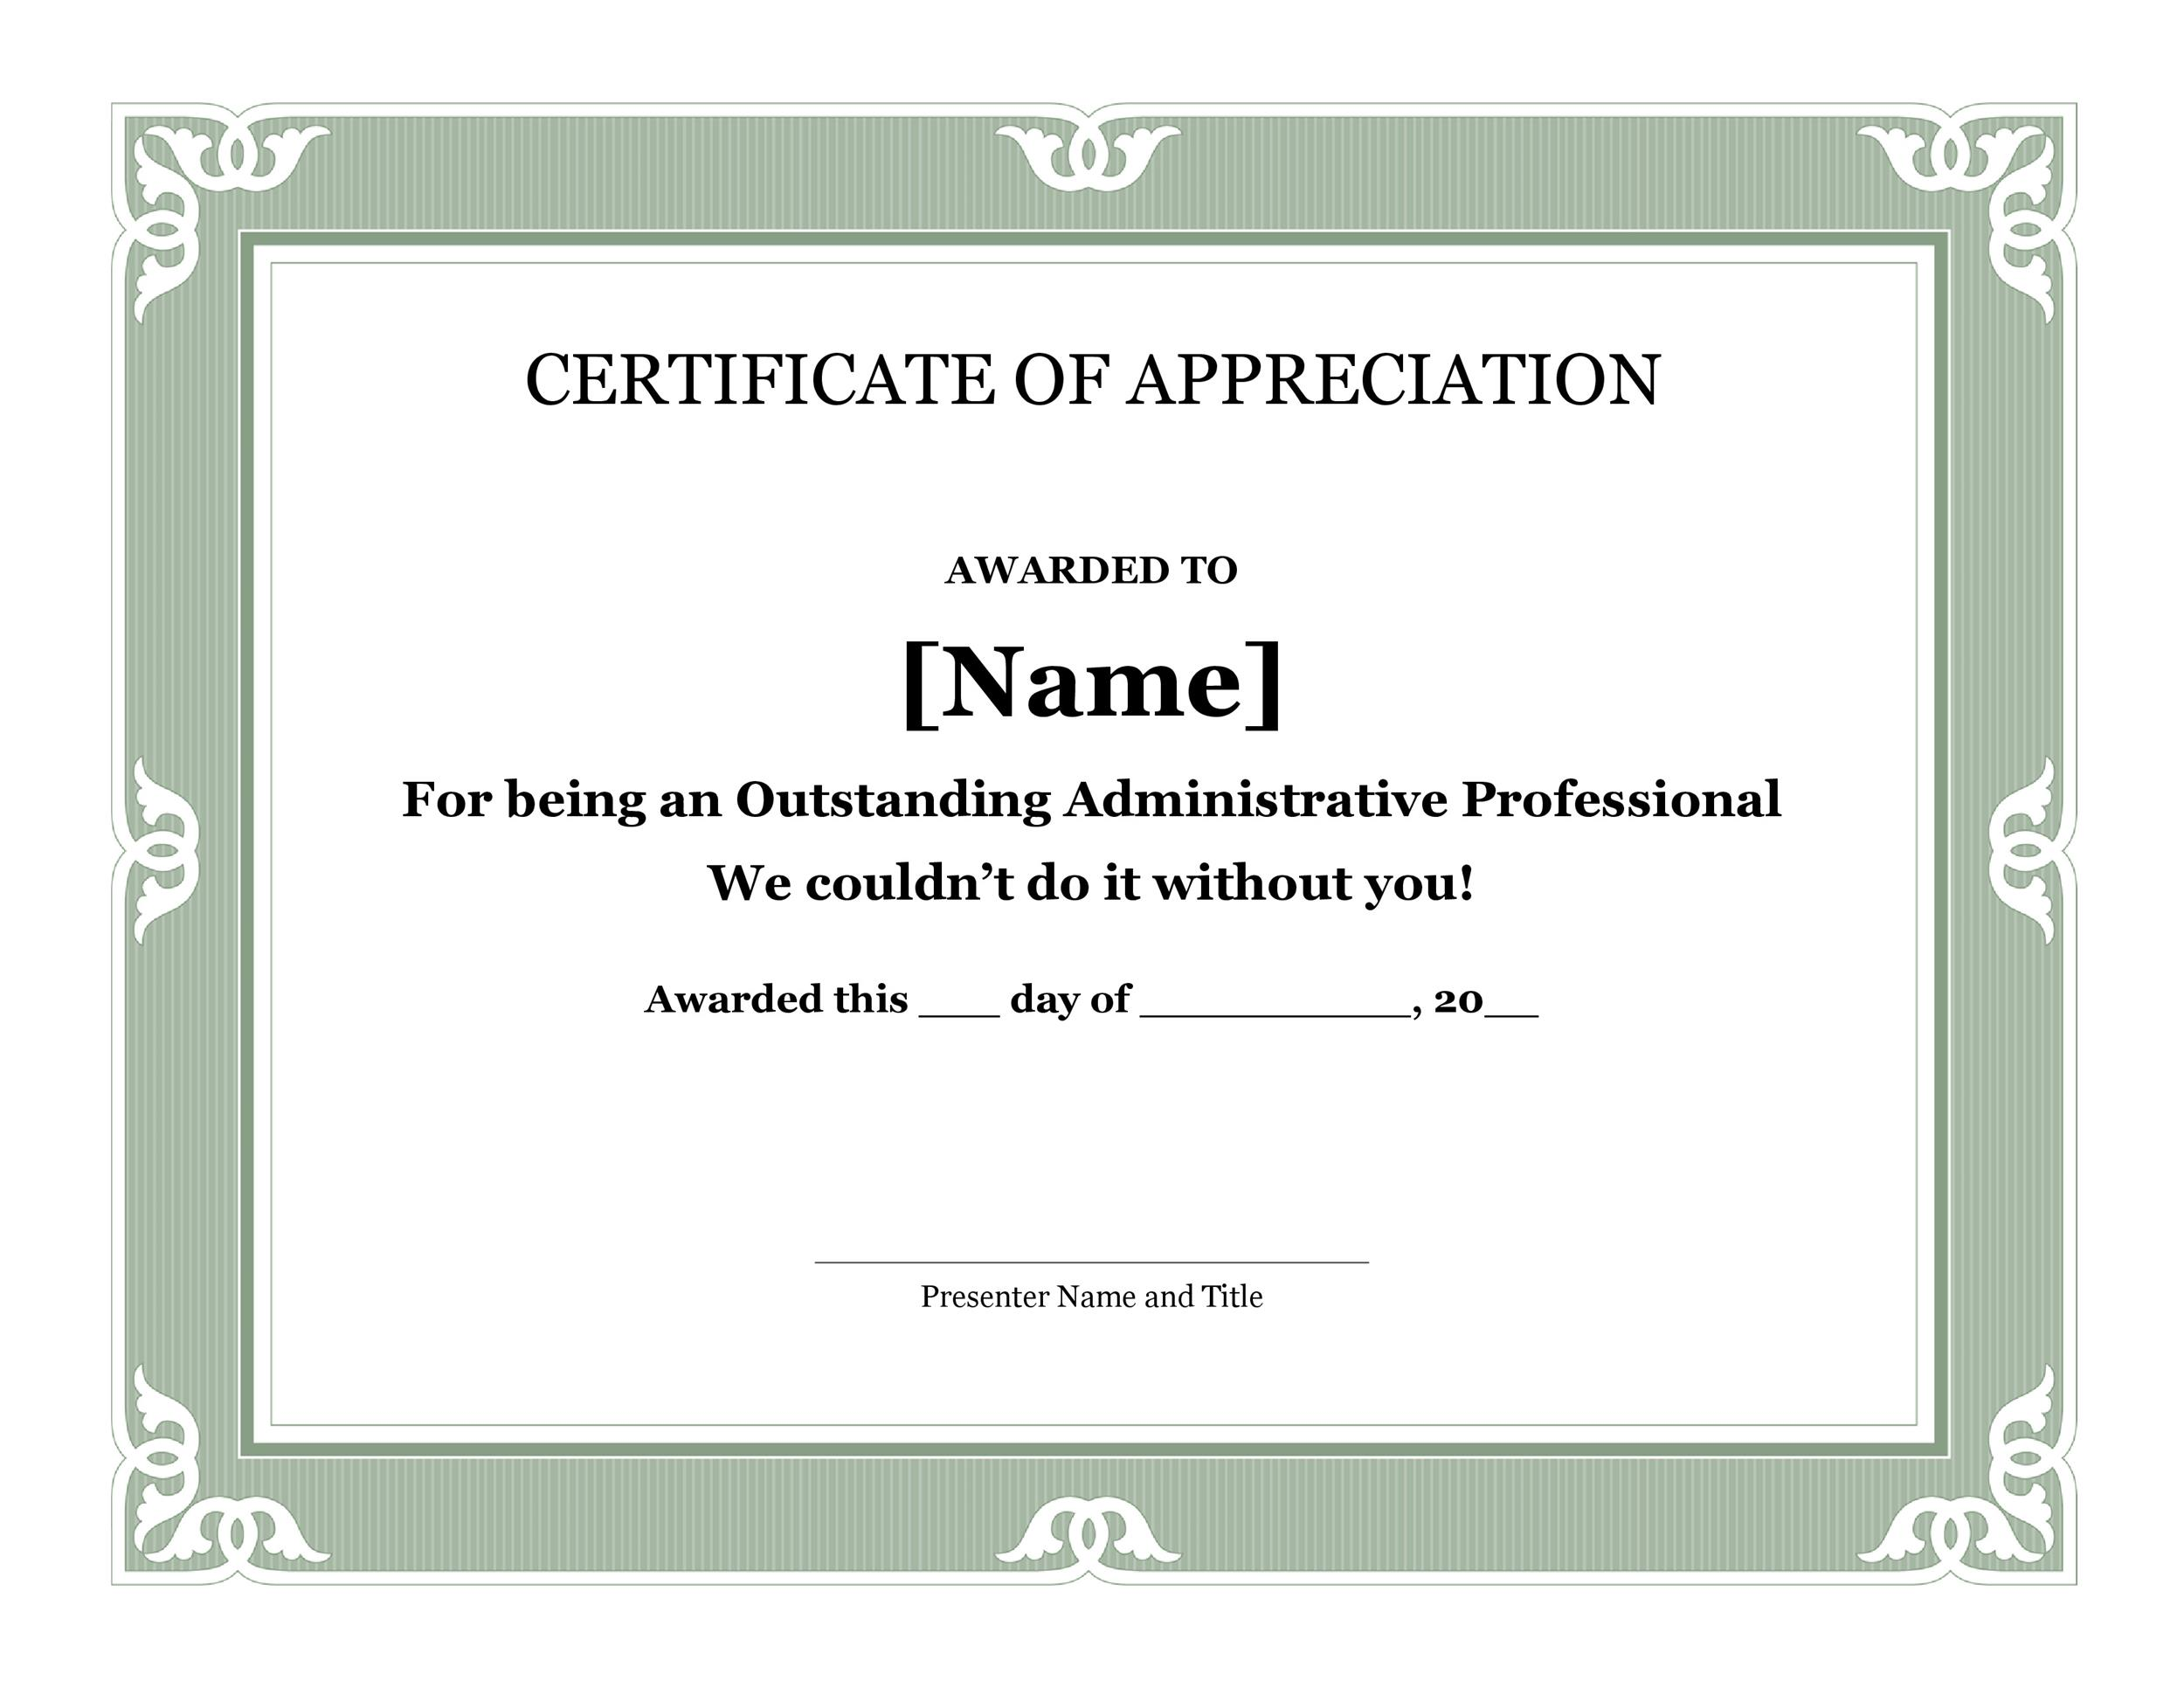 Certificate of appreciation template free download tiredriveeasy certificate of appreciation template free download yadclub Images